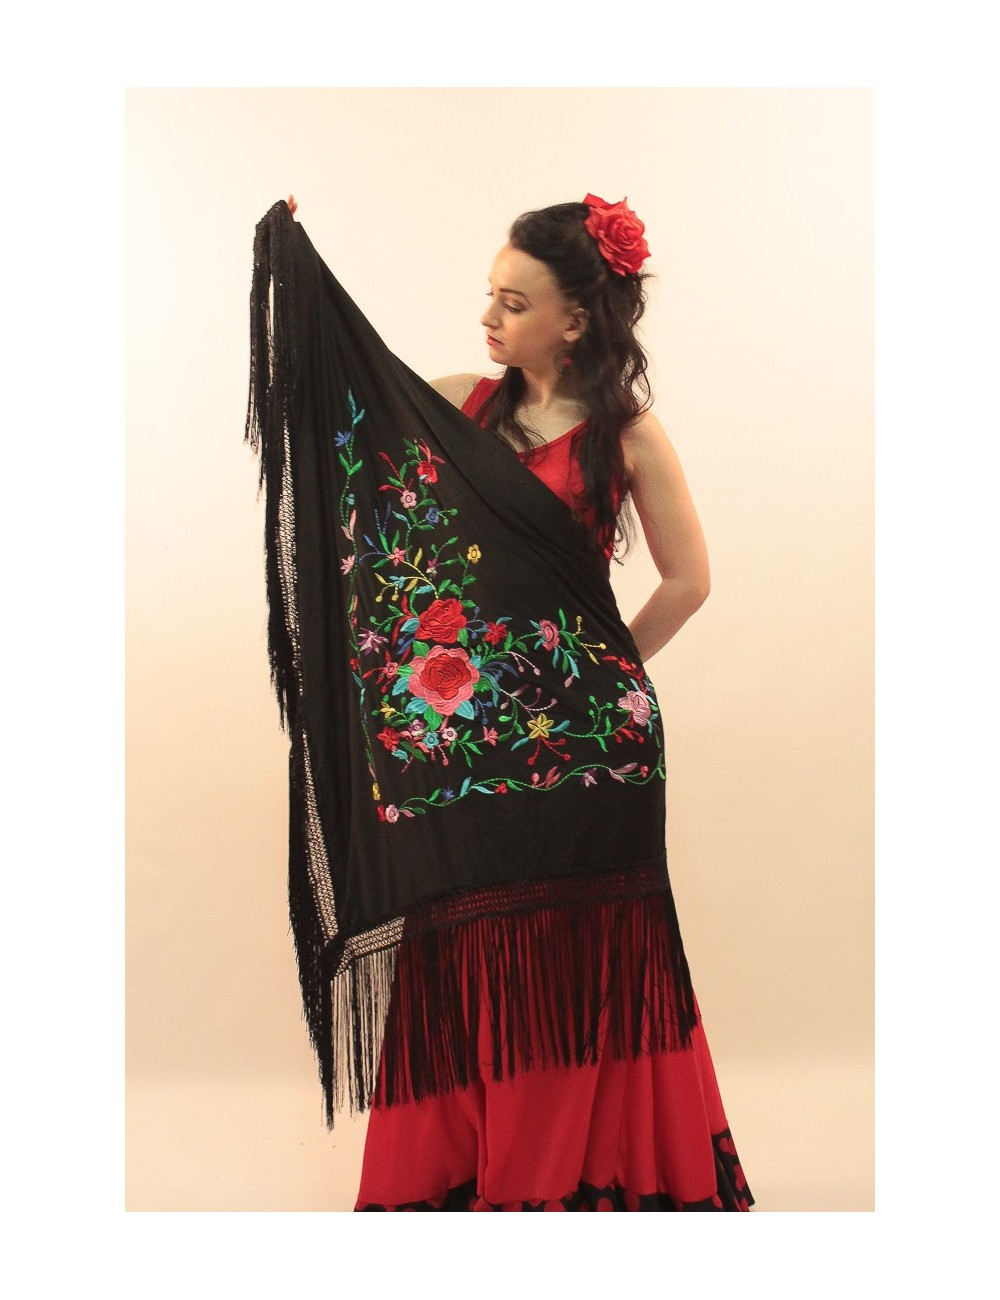 Châle flamenco noir brodé multicolor